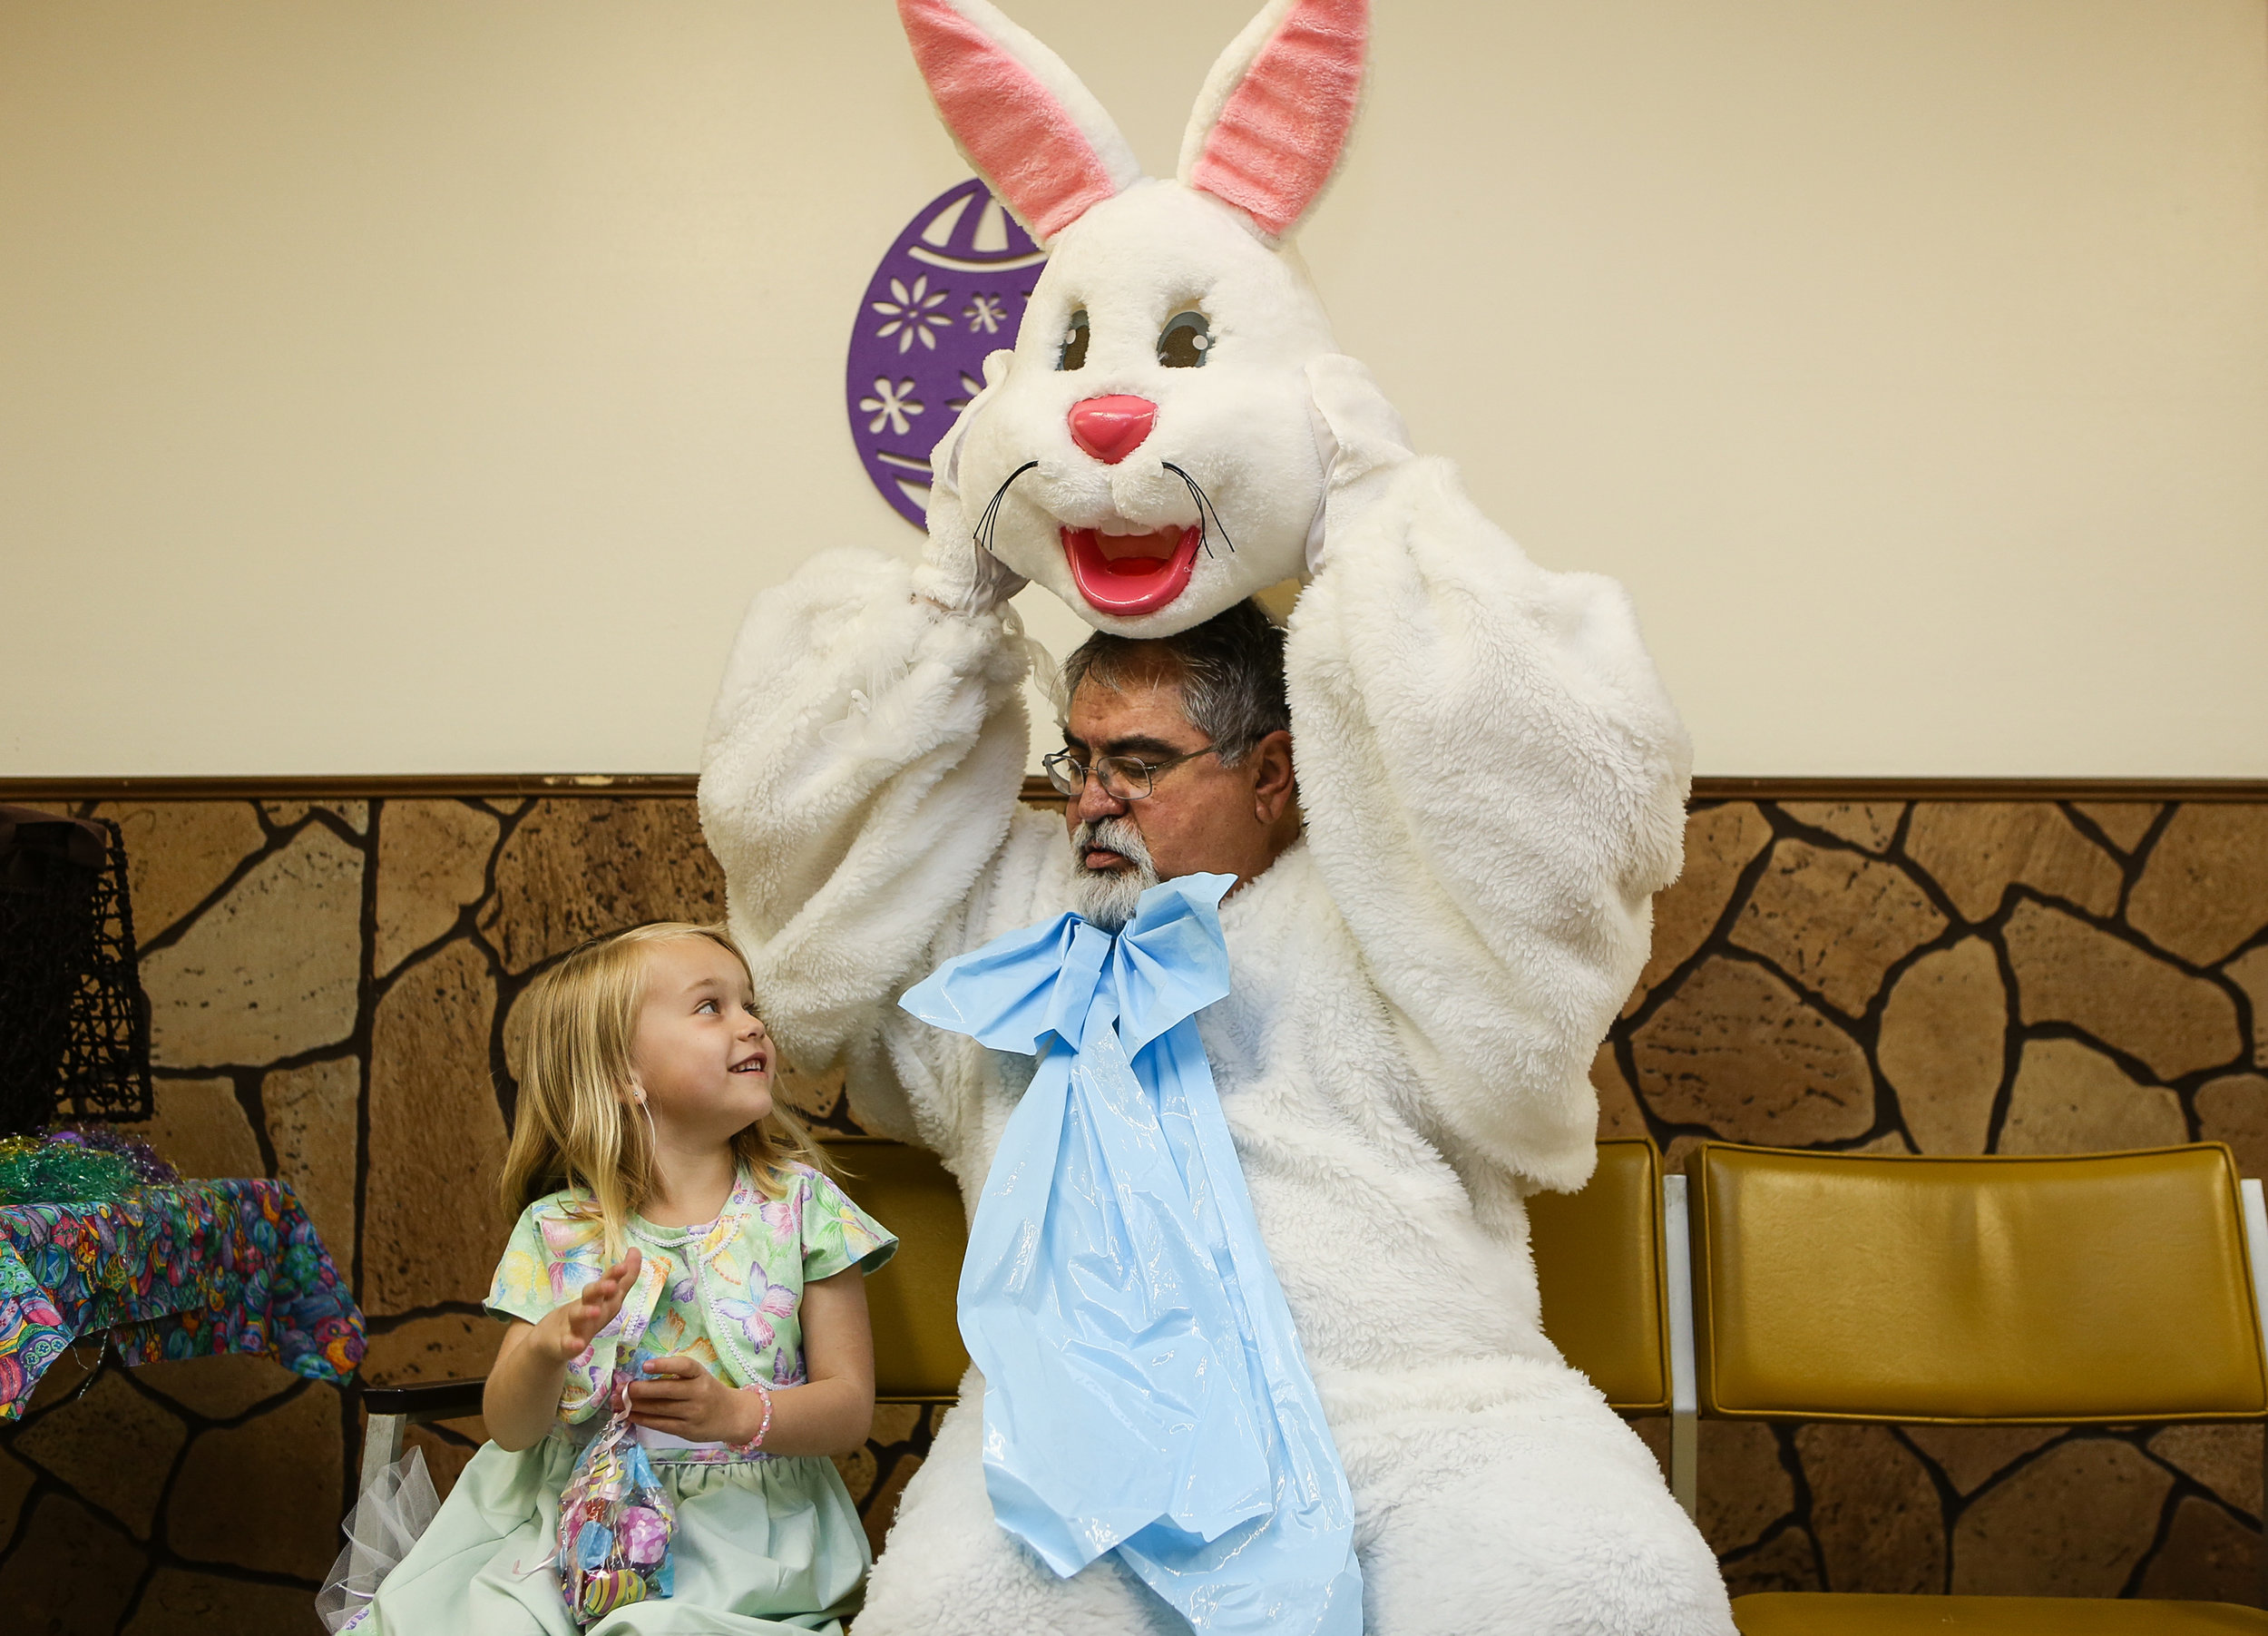 Katelyn Ragsdale shares a moment with Larry Lambert as the Easter Bunny in Ray, North Dakota